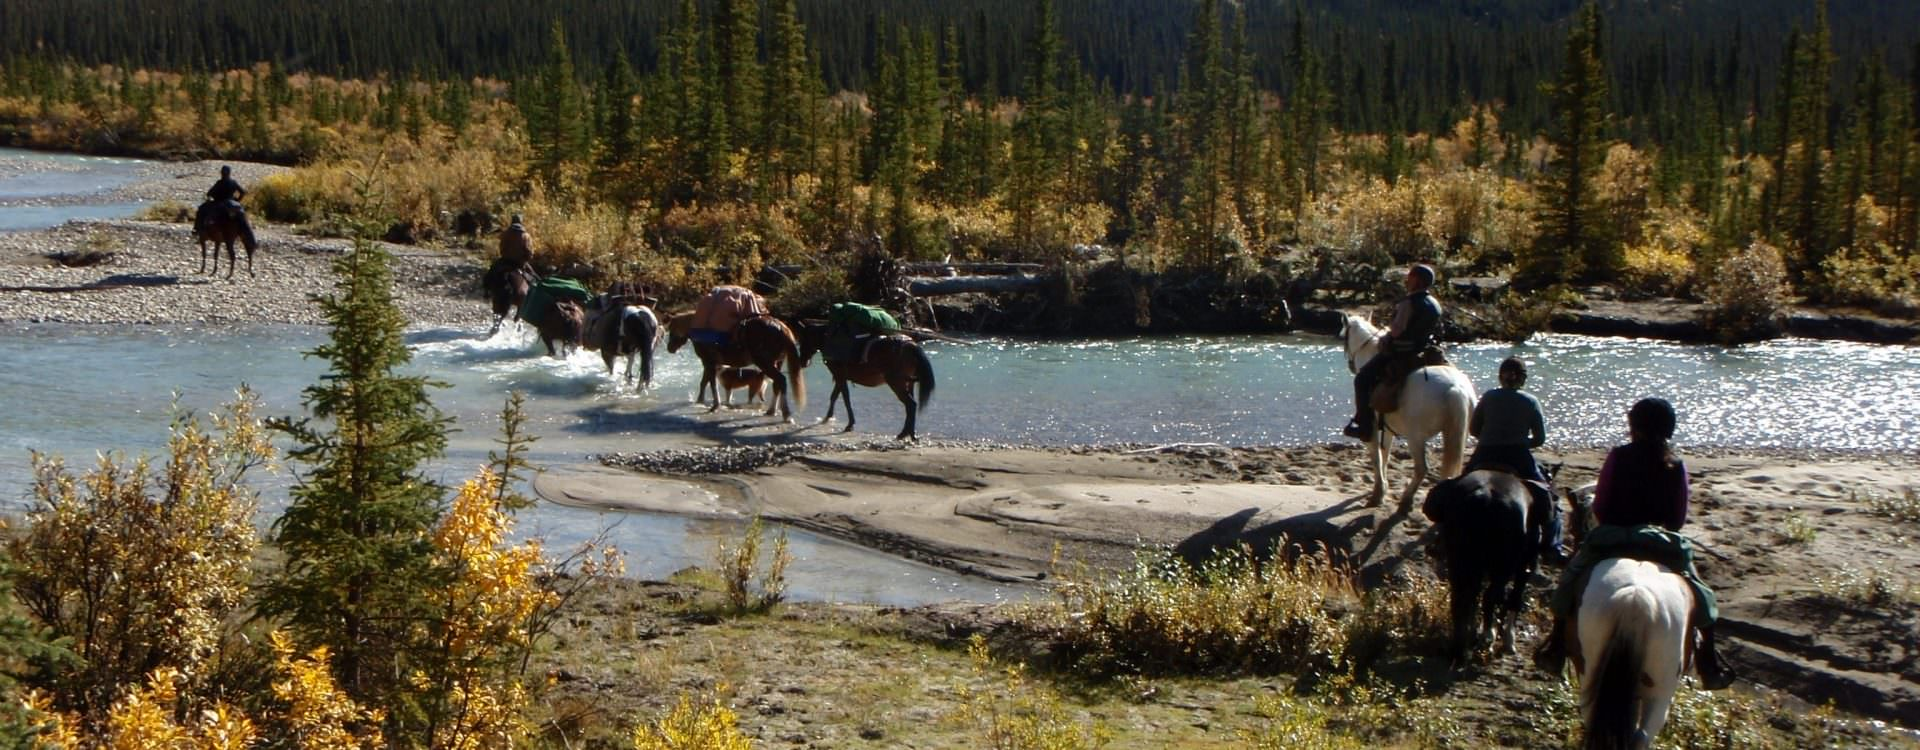 Riding through the Shine Valley - Yukon